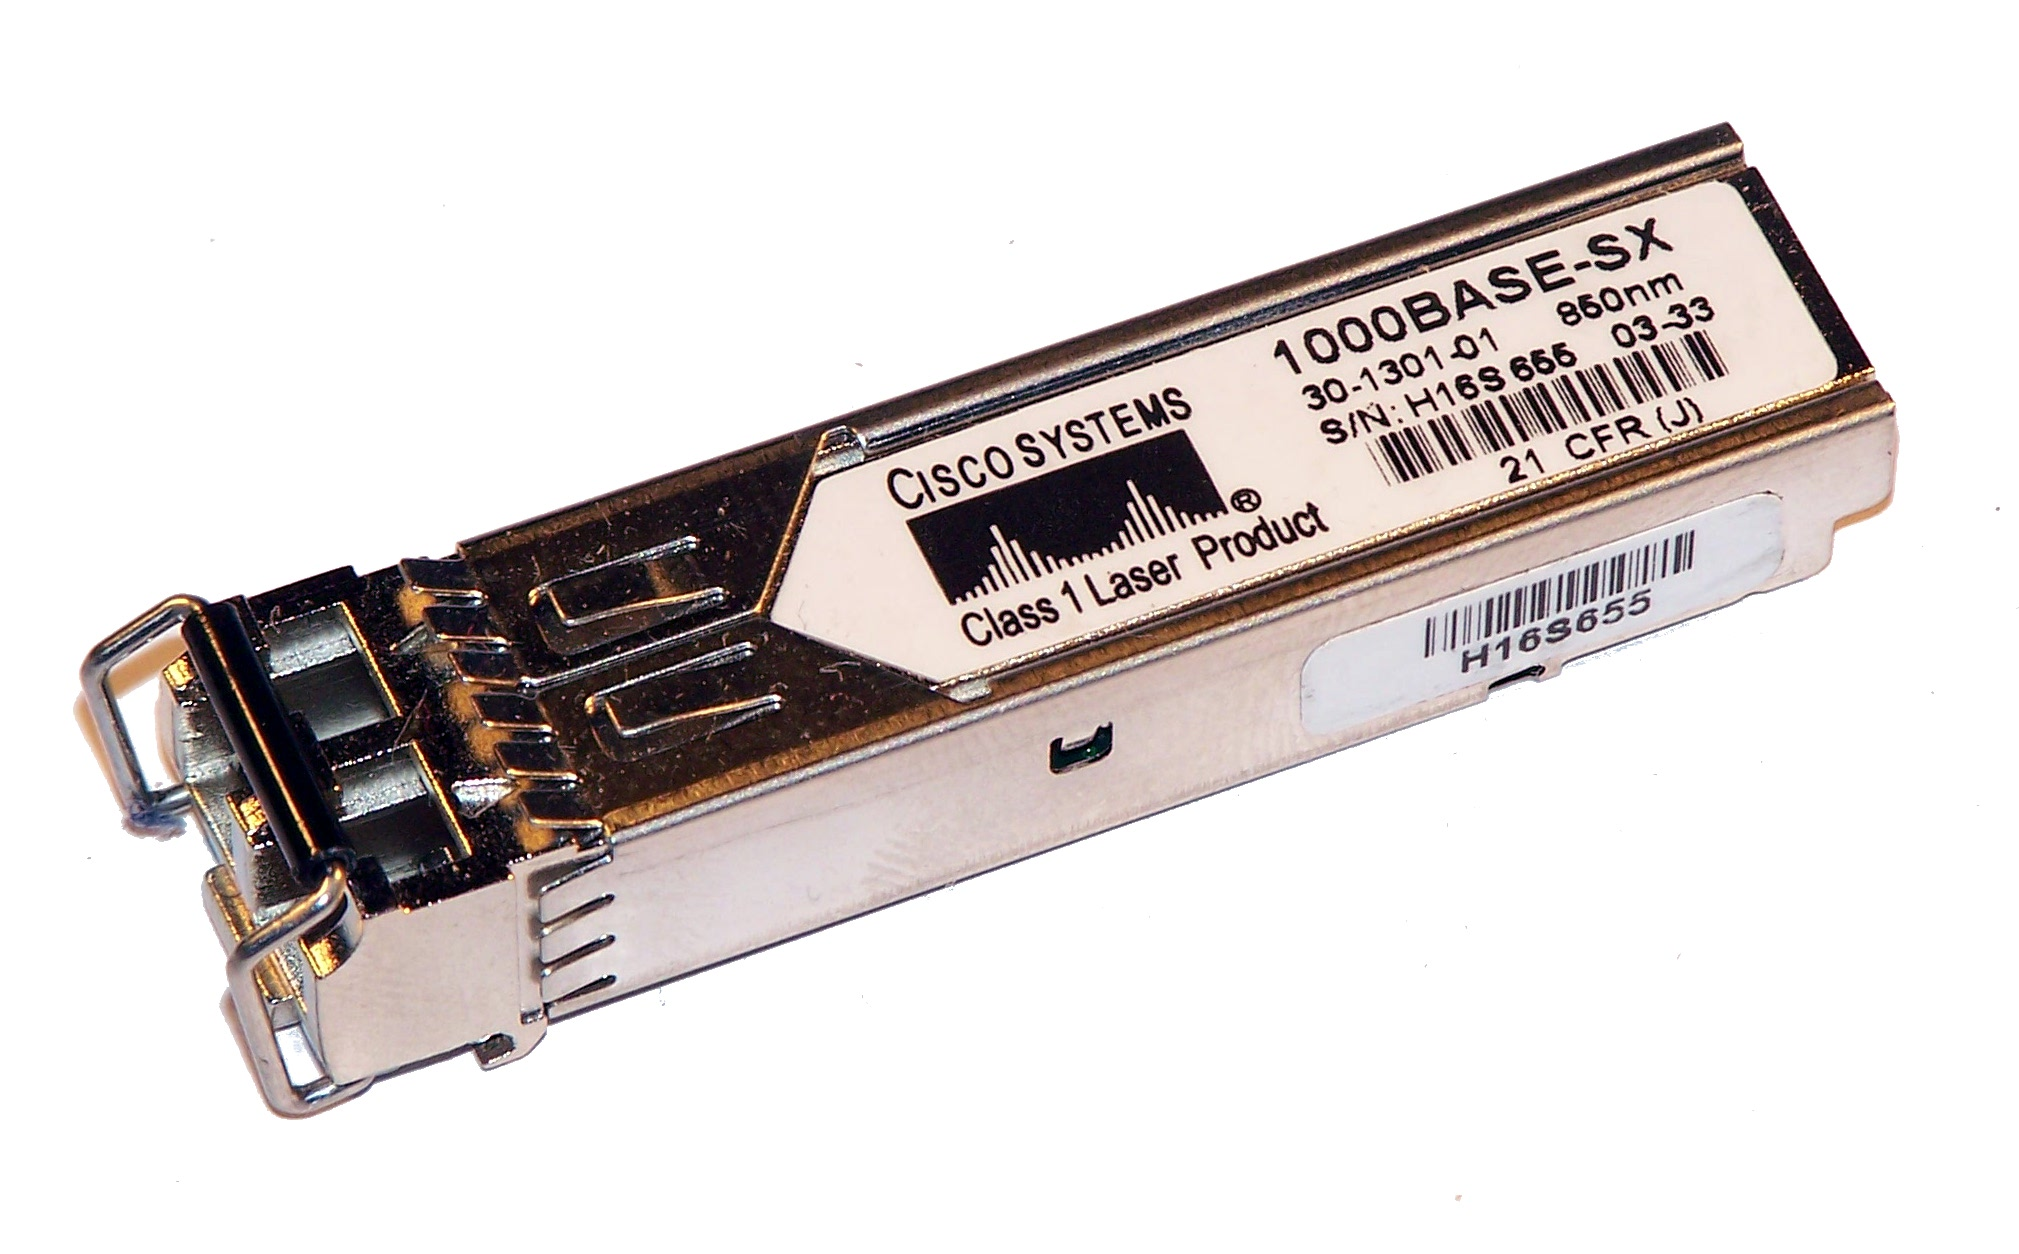 Cisco 30-1301-01 1000BASE-SX SFP 850nm GBIC GLC-SX-MM= Transceiver